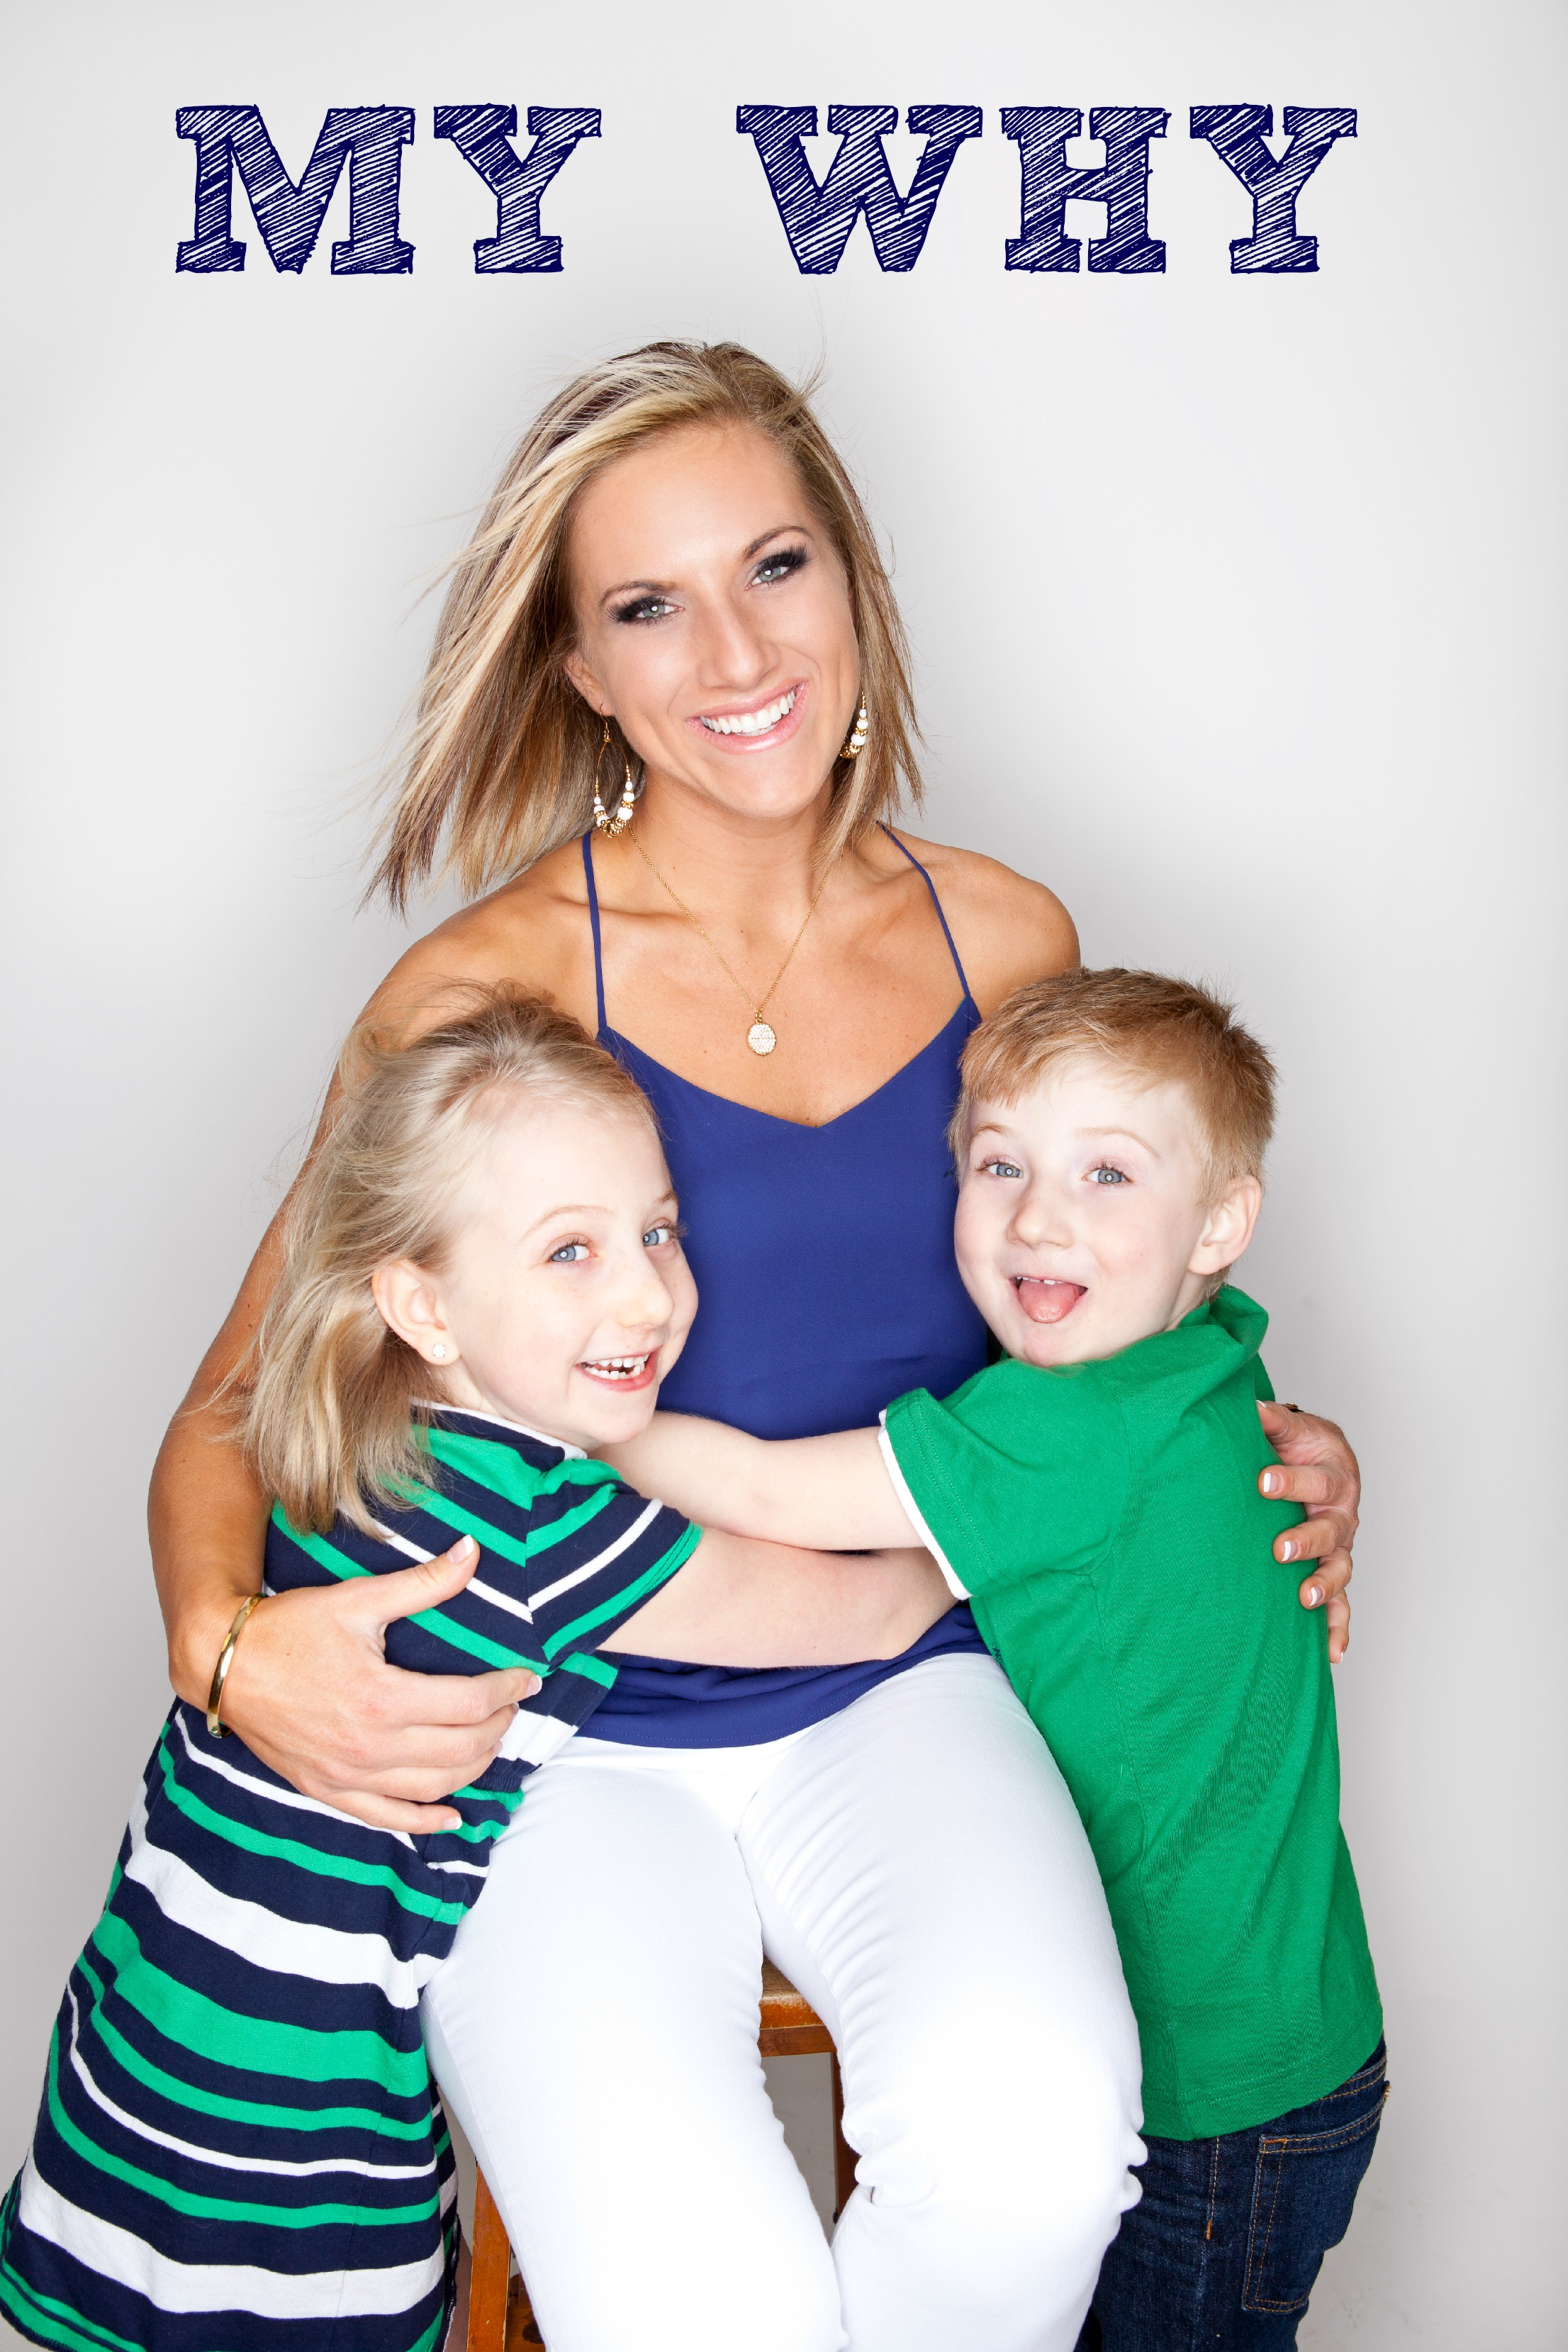 beachbody coach, successful, successful coach, my why, why, have a why, my kids, my life